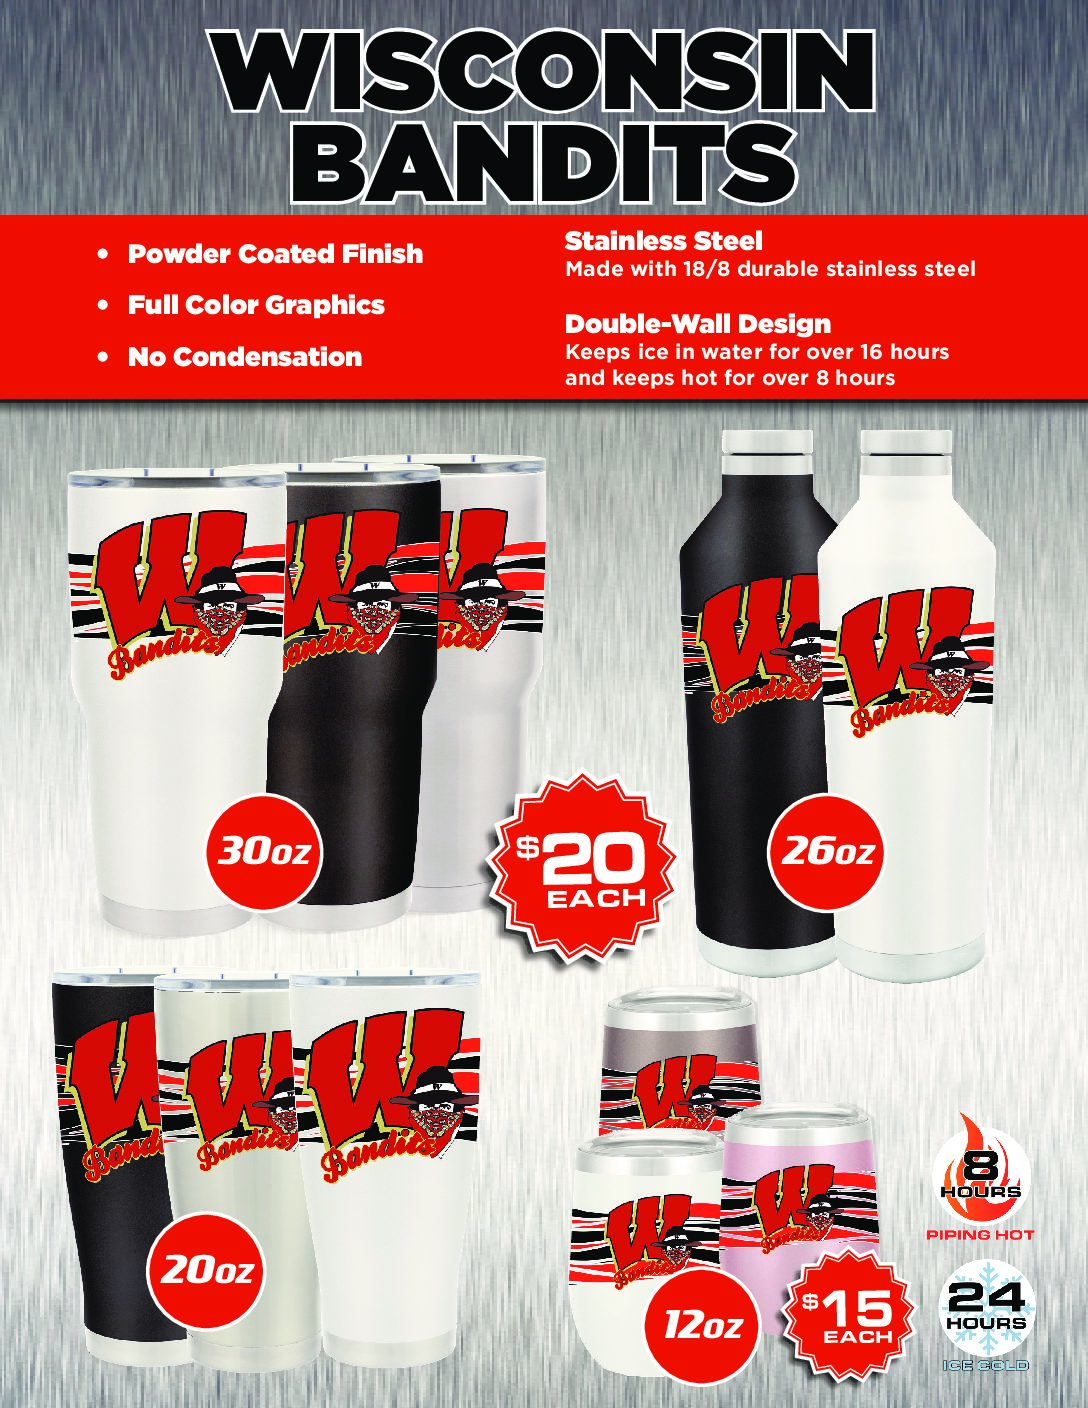 Bandit Tumblers & Cups For Sale!  Orders due Feb 2nd! See your Coach for an order form.